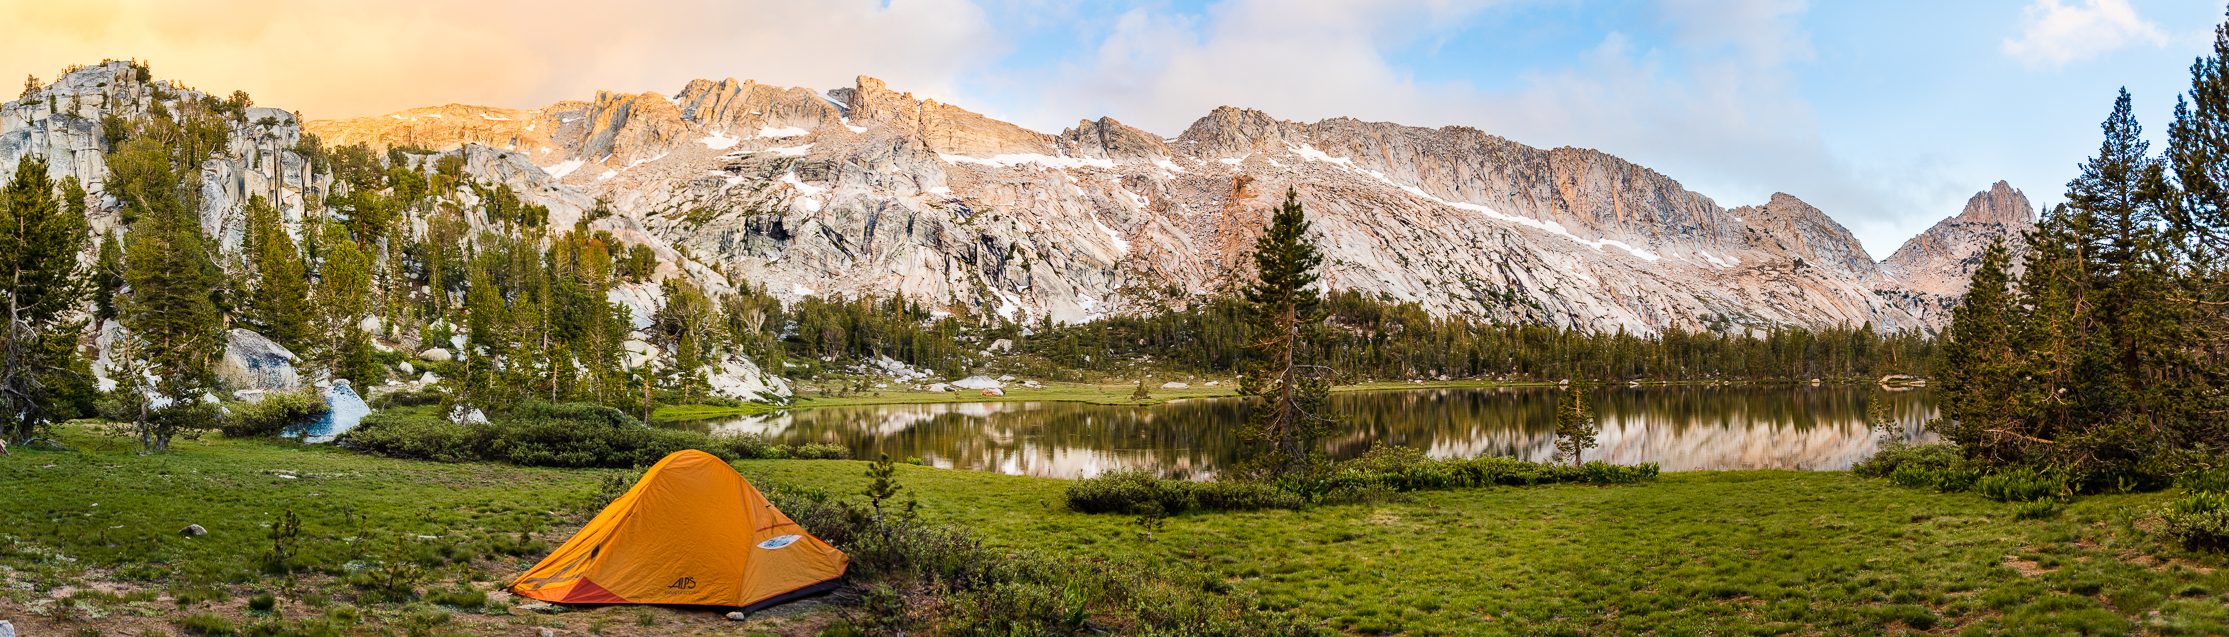 A single orange tent among beautiful granite mountains and small lake at sunset.